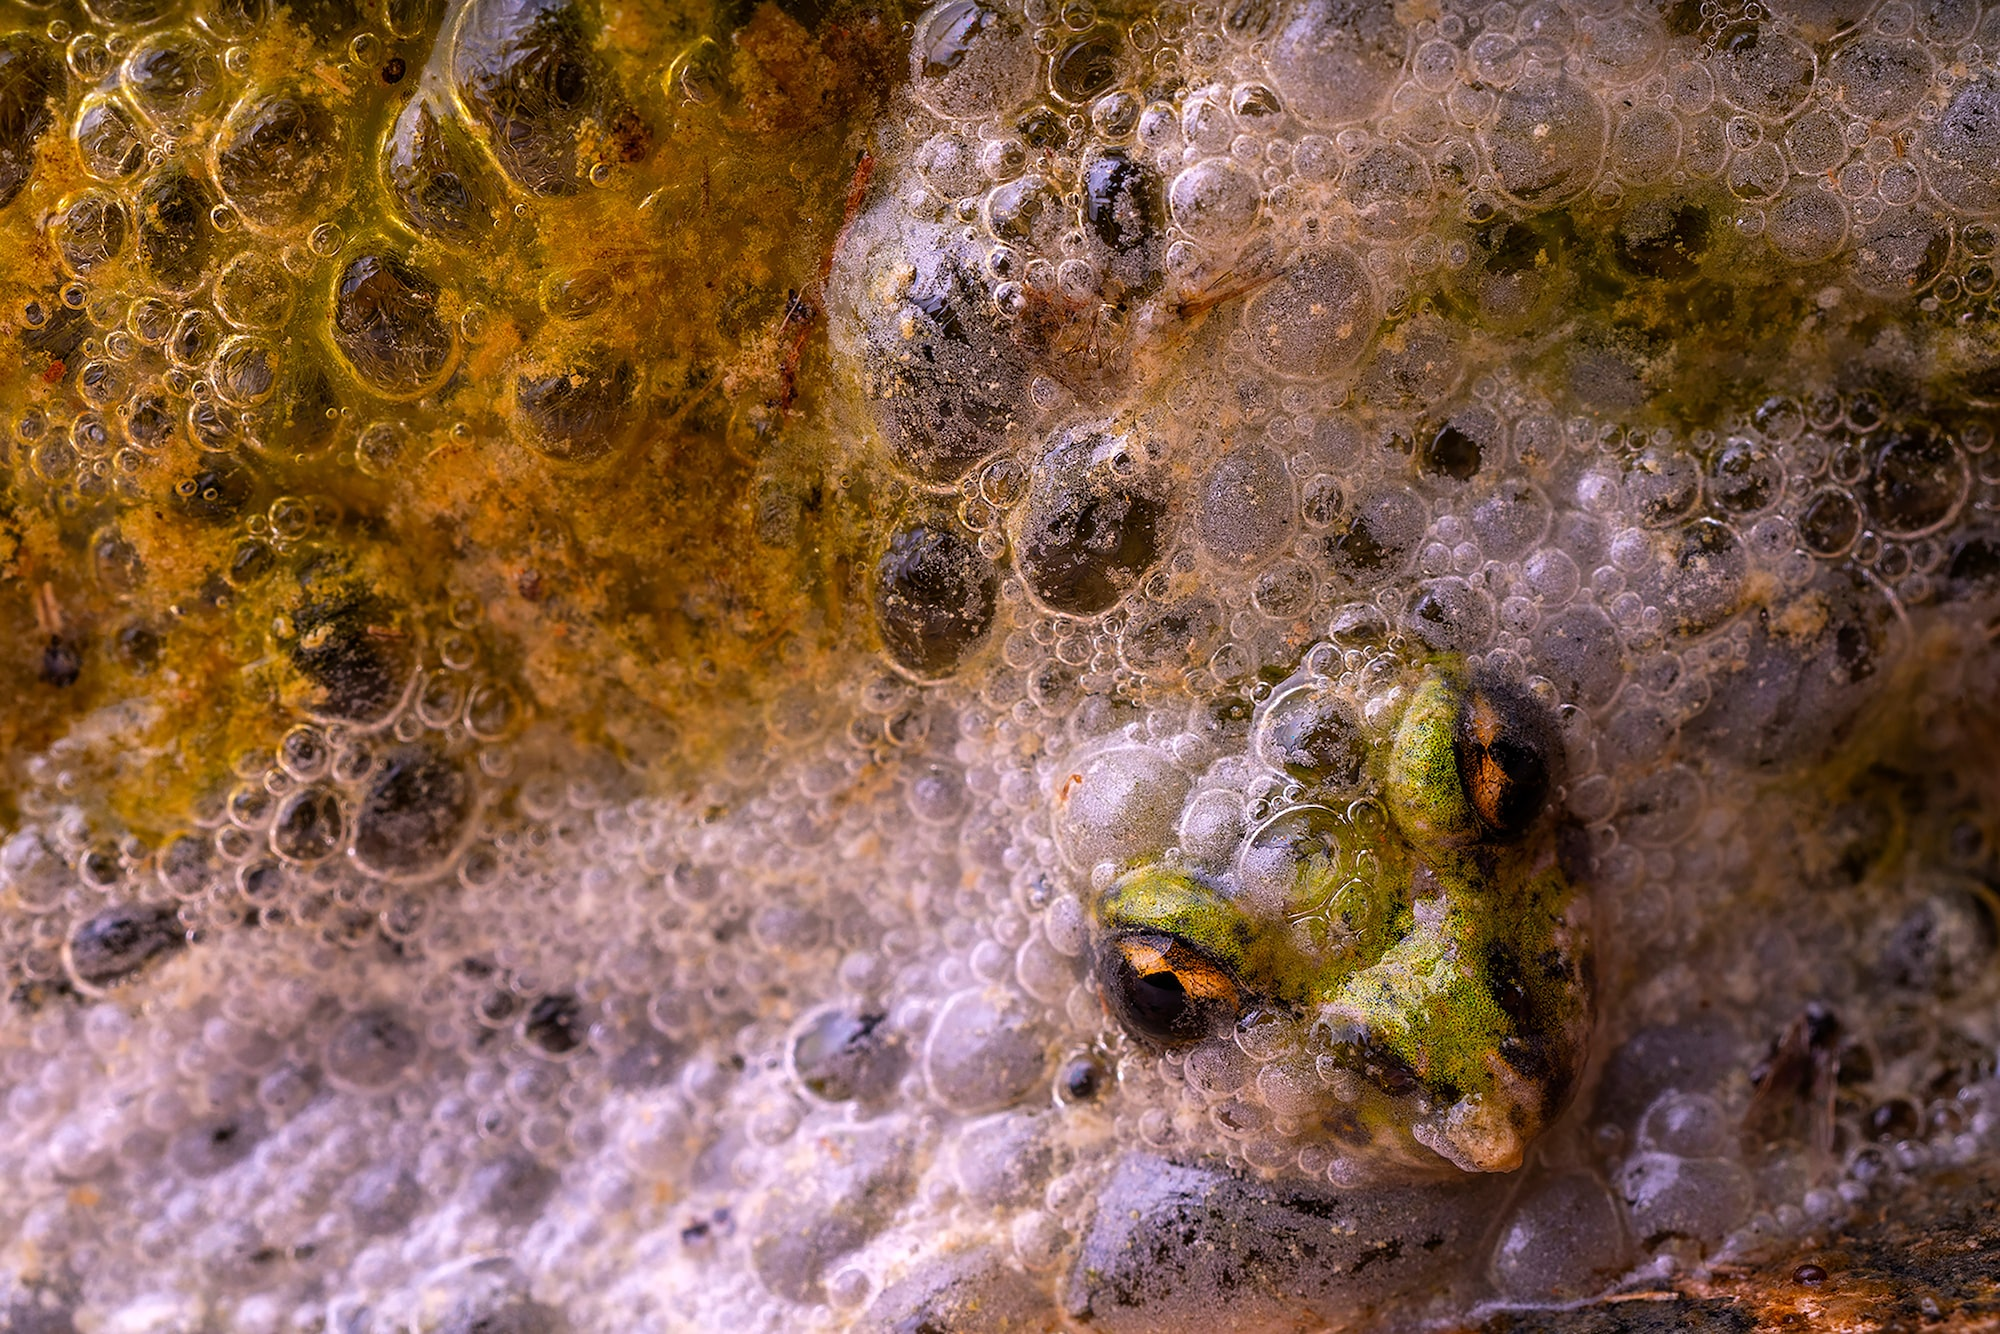 javier aznar sony alpha 7RIII a frogs head pokes out from a mass of bubbles